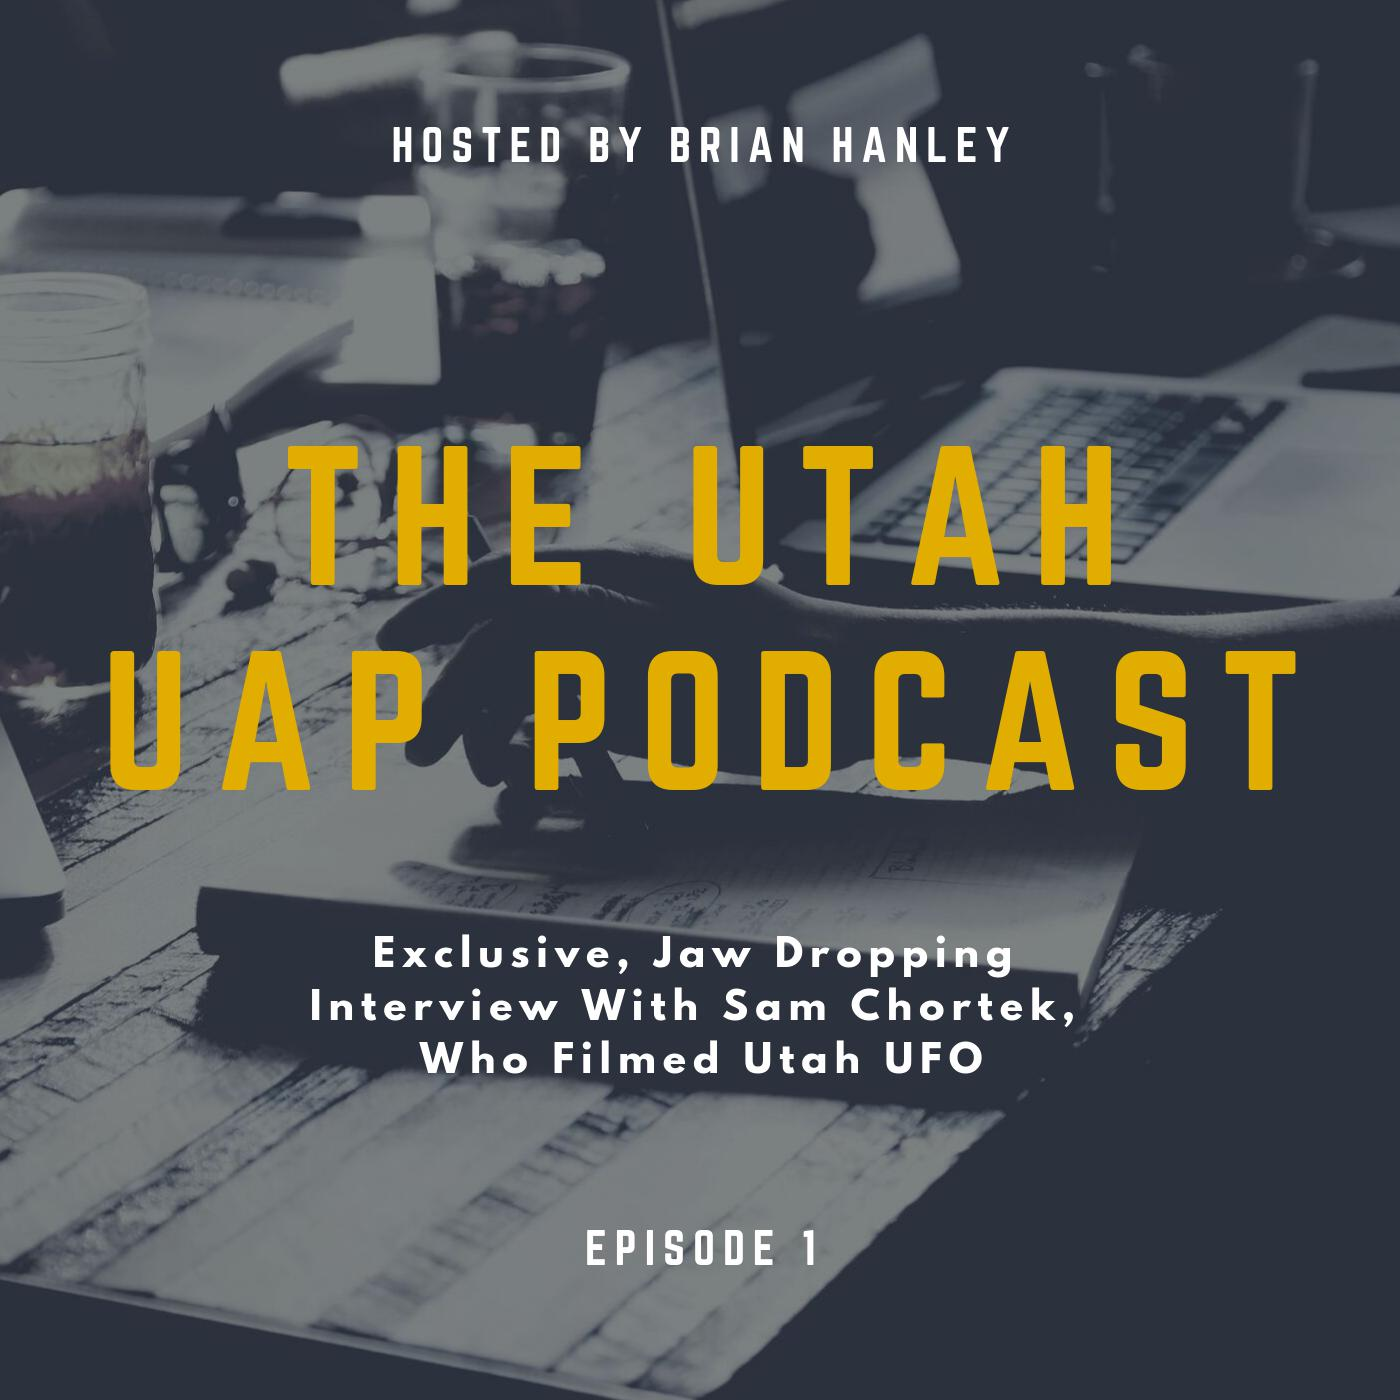 Exclusive, Jaw Dropping Interview With Sam Chortek, Who Filmed Utah UFO